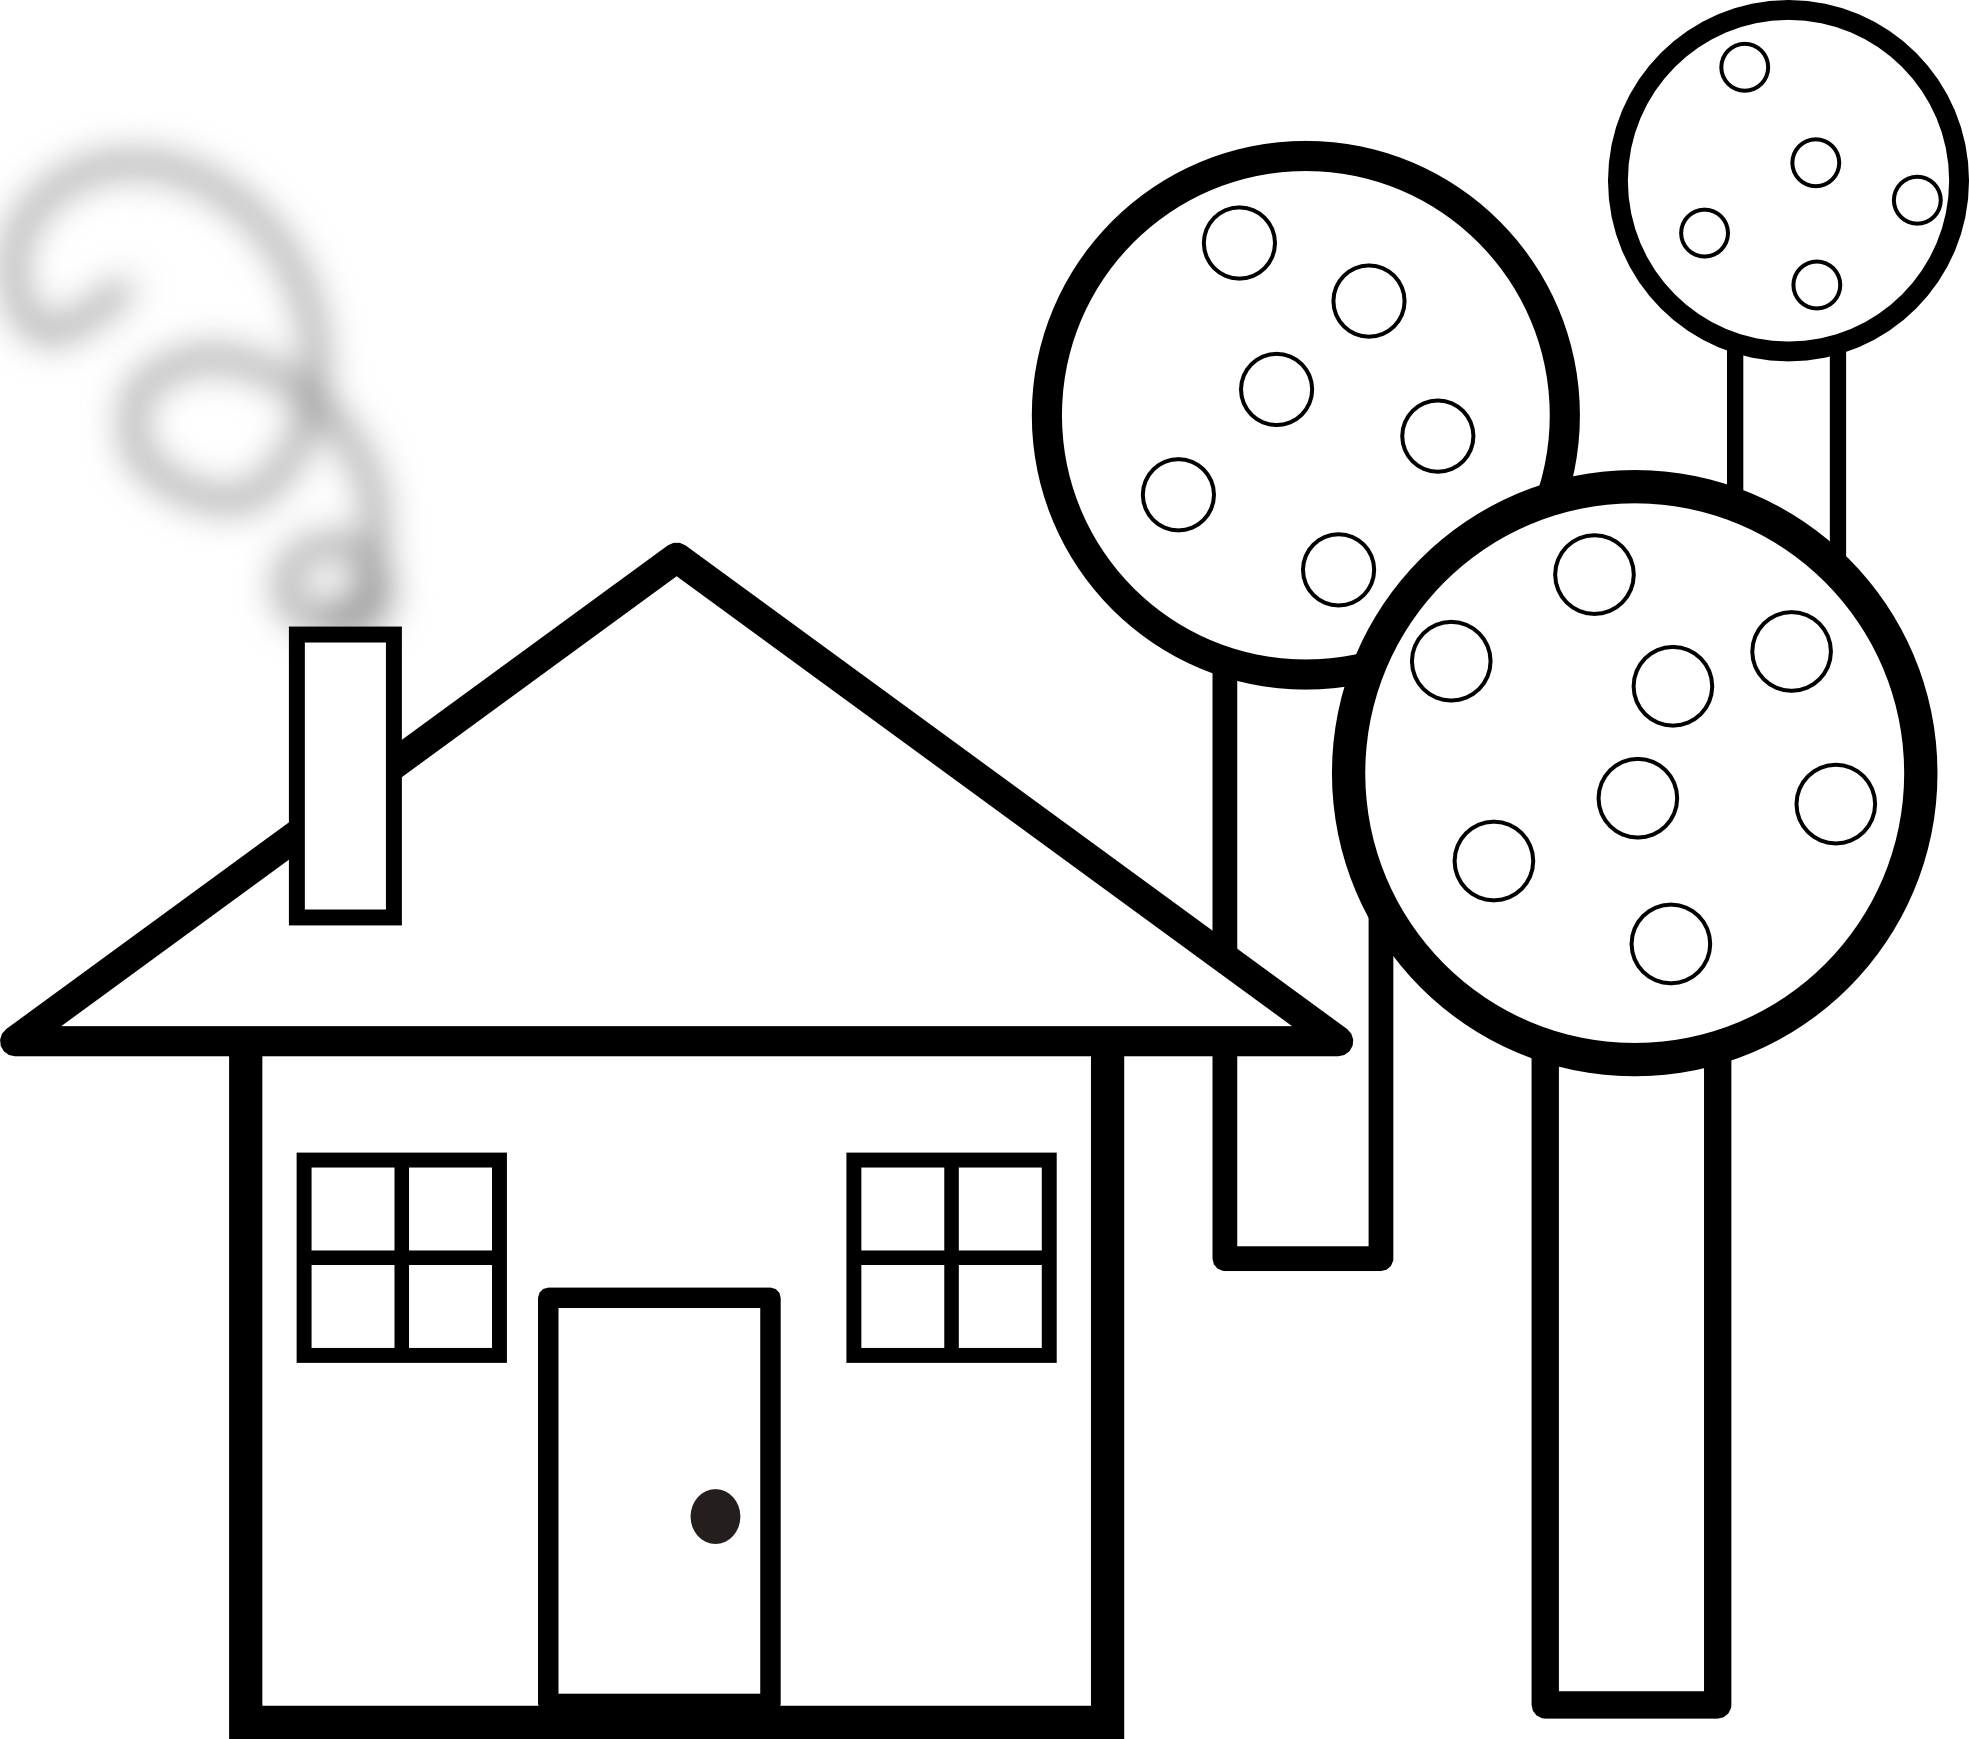 House clipart black and white outline download Haunted House Coloring Page | Clipart Panda - Free Clipart Images download